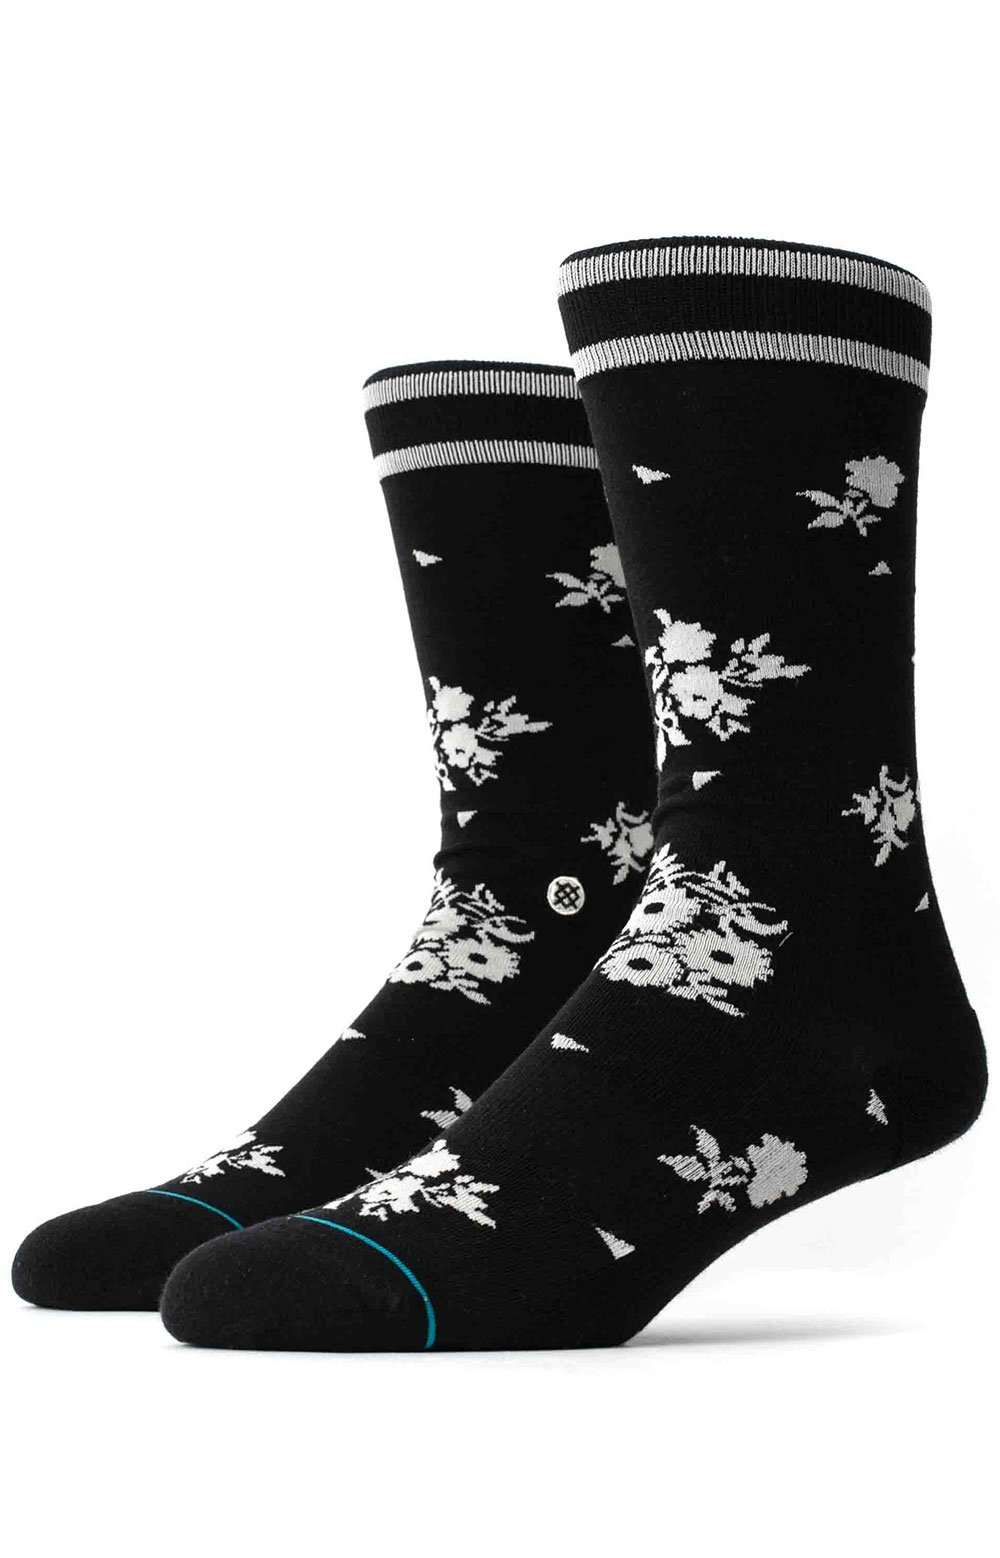 Booths Socks - Black